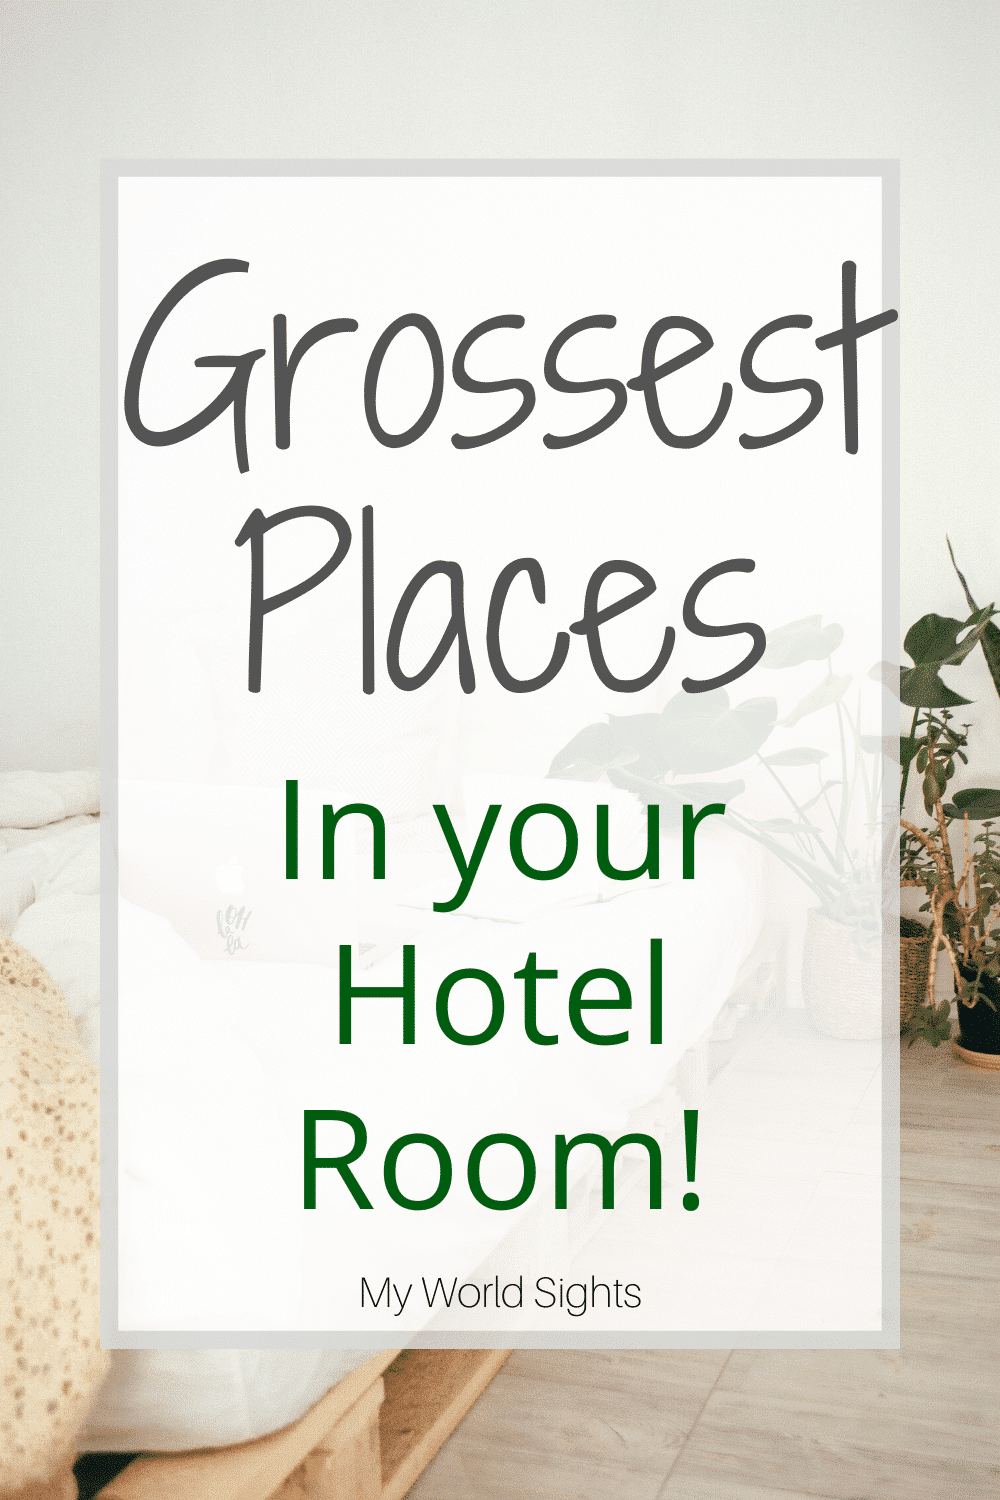 Grossest places in your hotel room